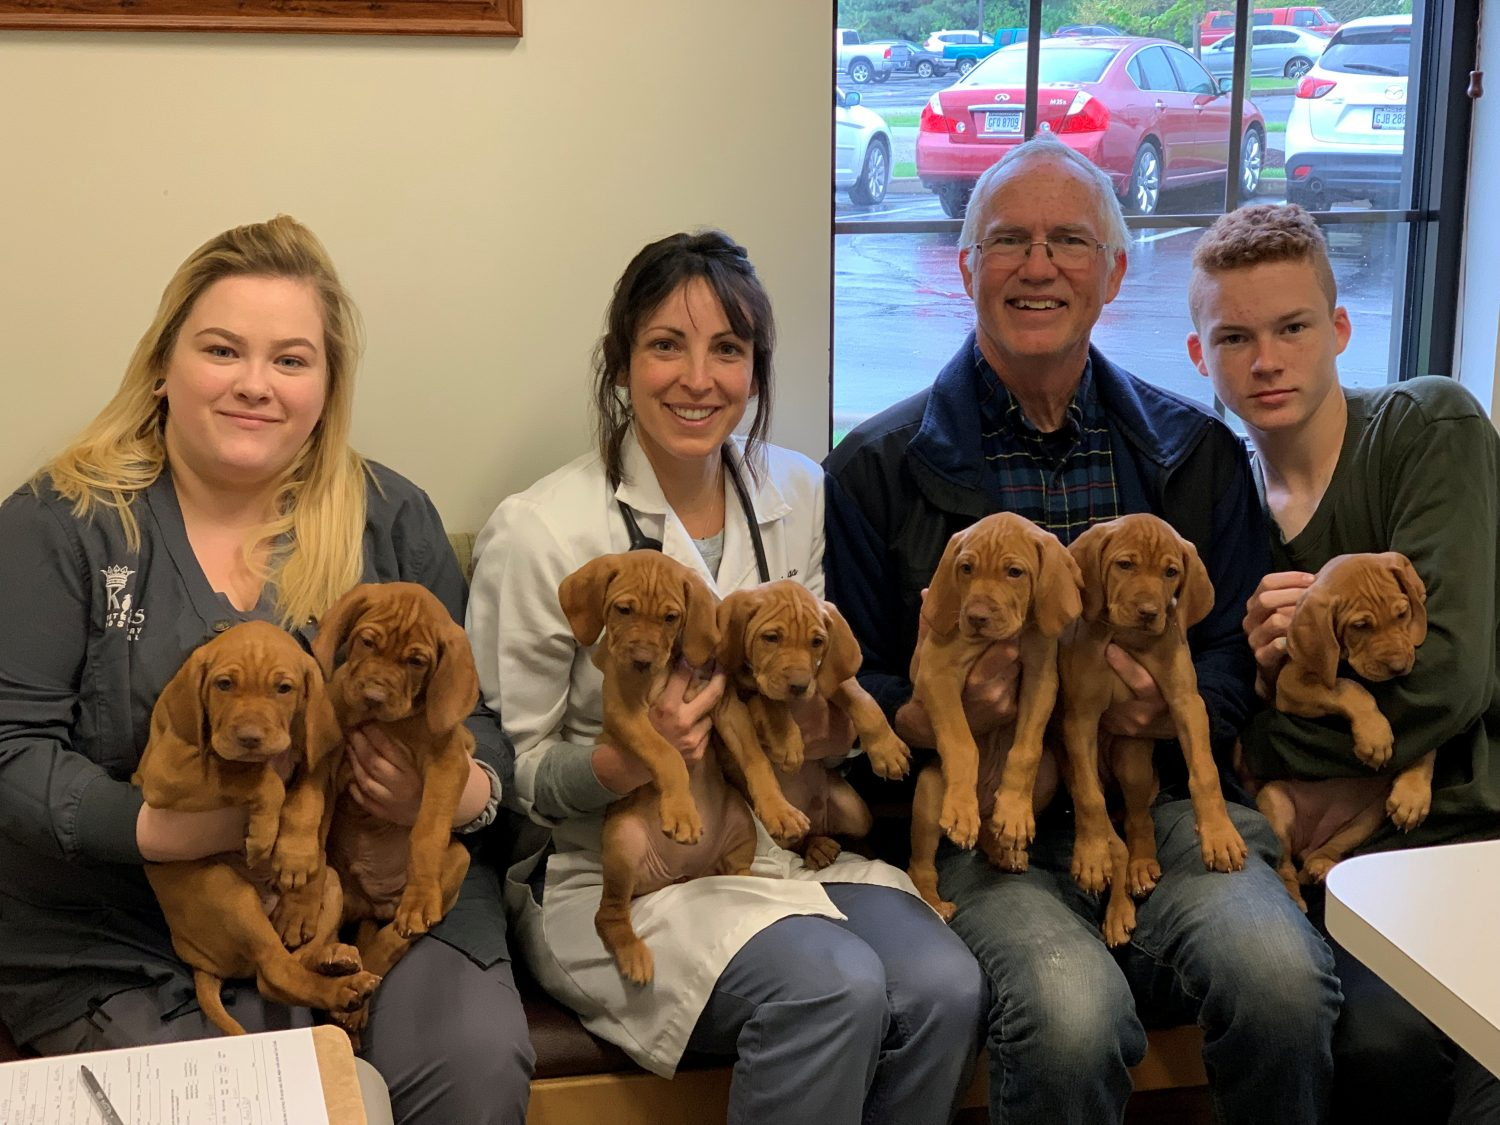 Destiny Brown, Dr. Katie Buss, and Kingsley family pose with puppies at the Kings Veterinary Hospital in Loveland, Ohio, U.S., on April 26, 2019. Picture taken on April 26, 2019. Courtesy Jennifer Blodgett/Kings Veterinary Hospital/Handout via REUTERS